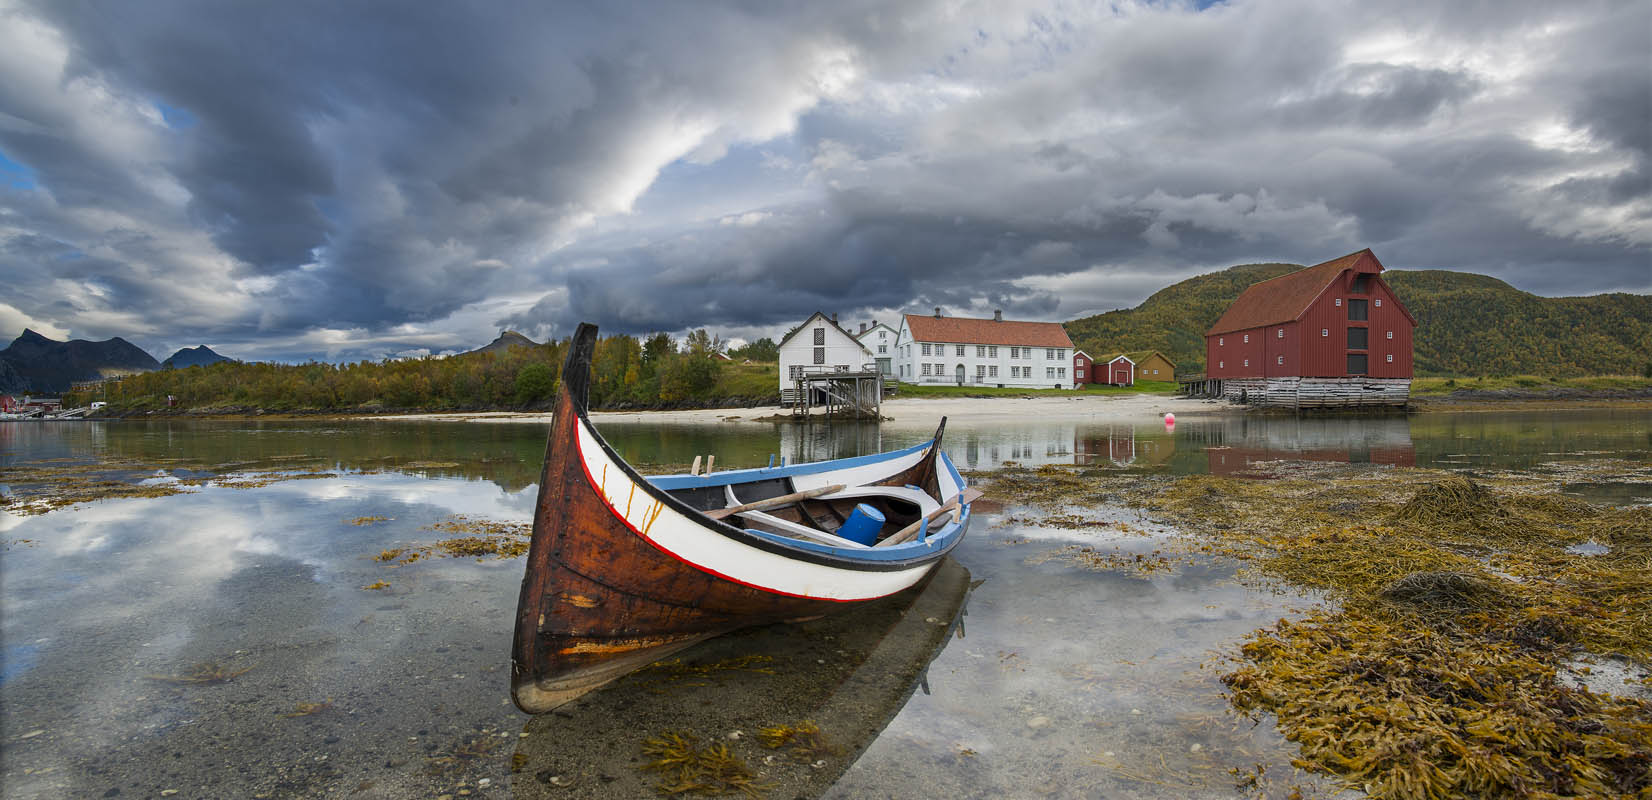 On your way north, you may go to places such as Kjerringøy